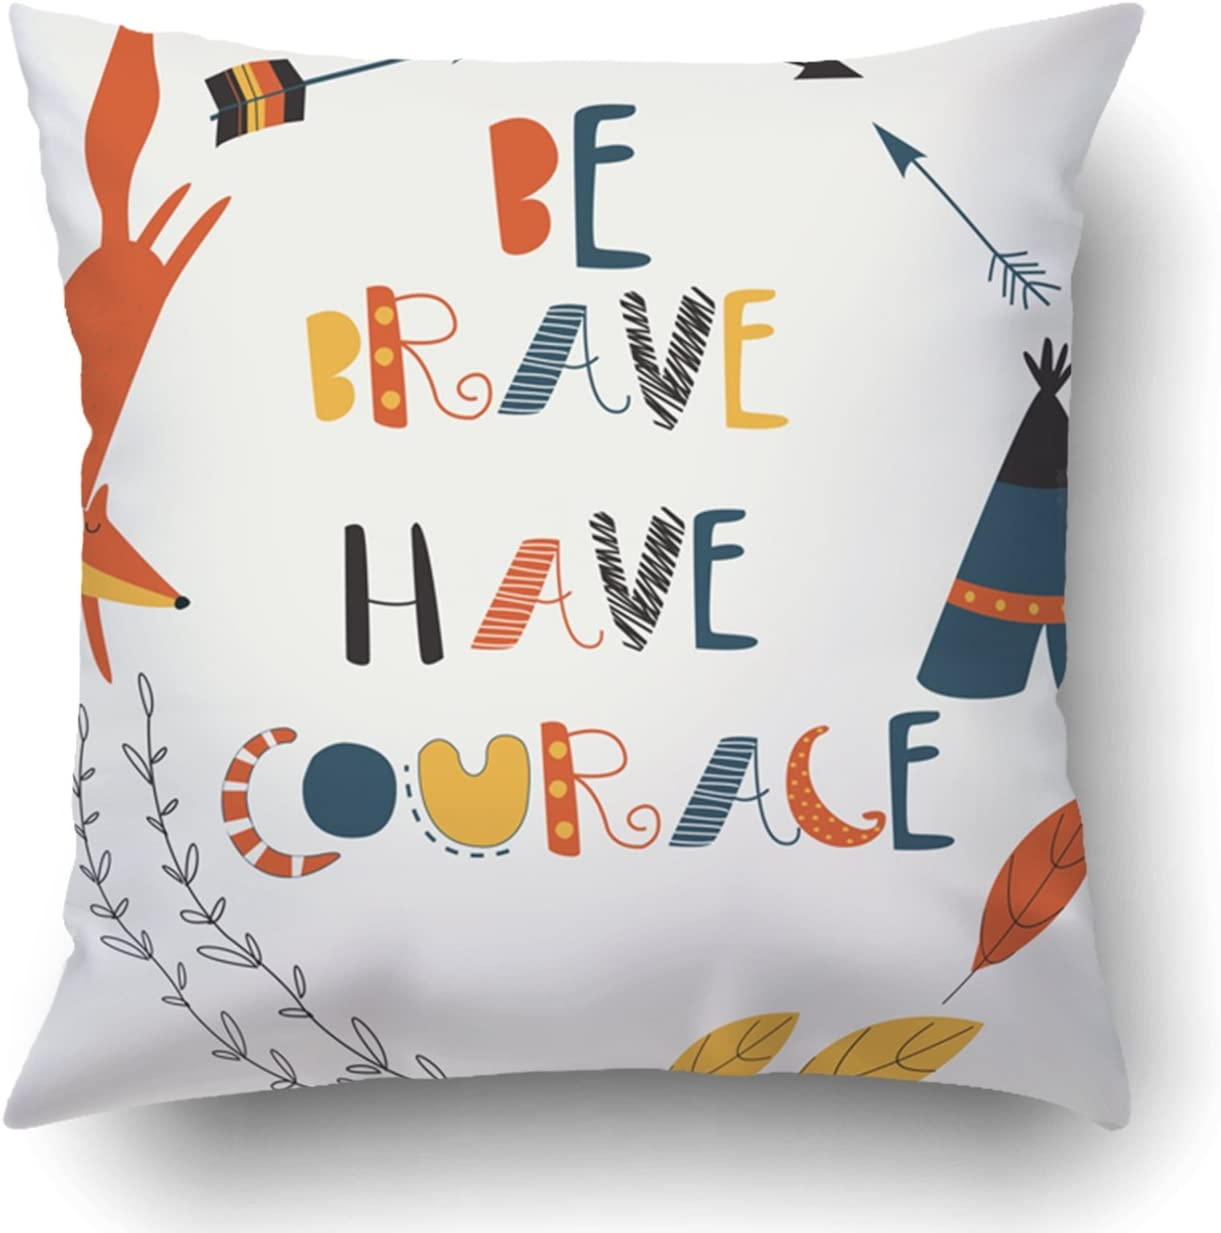 Emvency Decorative Throw Pillow Cover Case for Bedroom Couch Sofa Home Decor Cute Fox Laurels and Arrows in Cartoon Style Be Brave Have Courage Square 18x18 Inches Babys Arrow